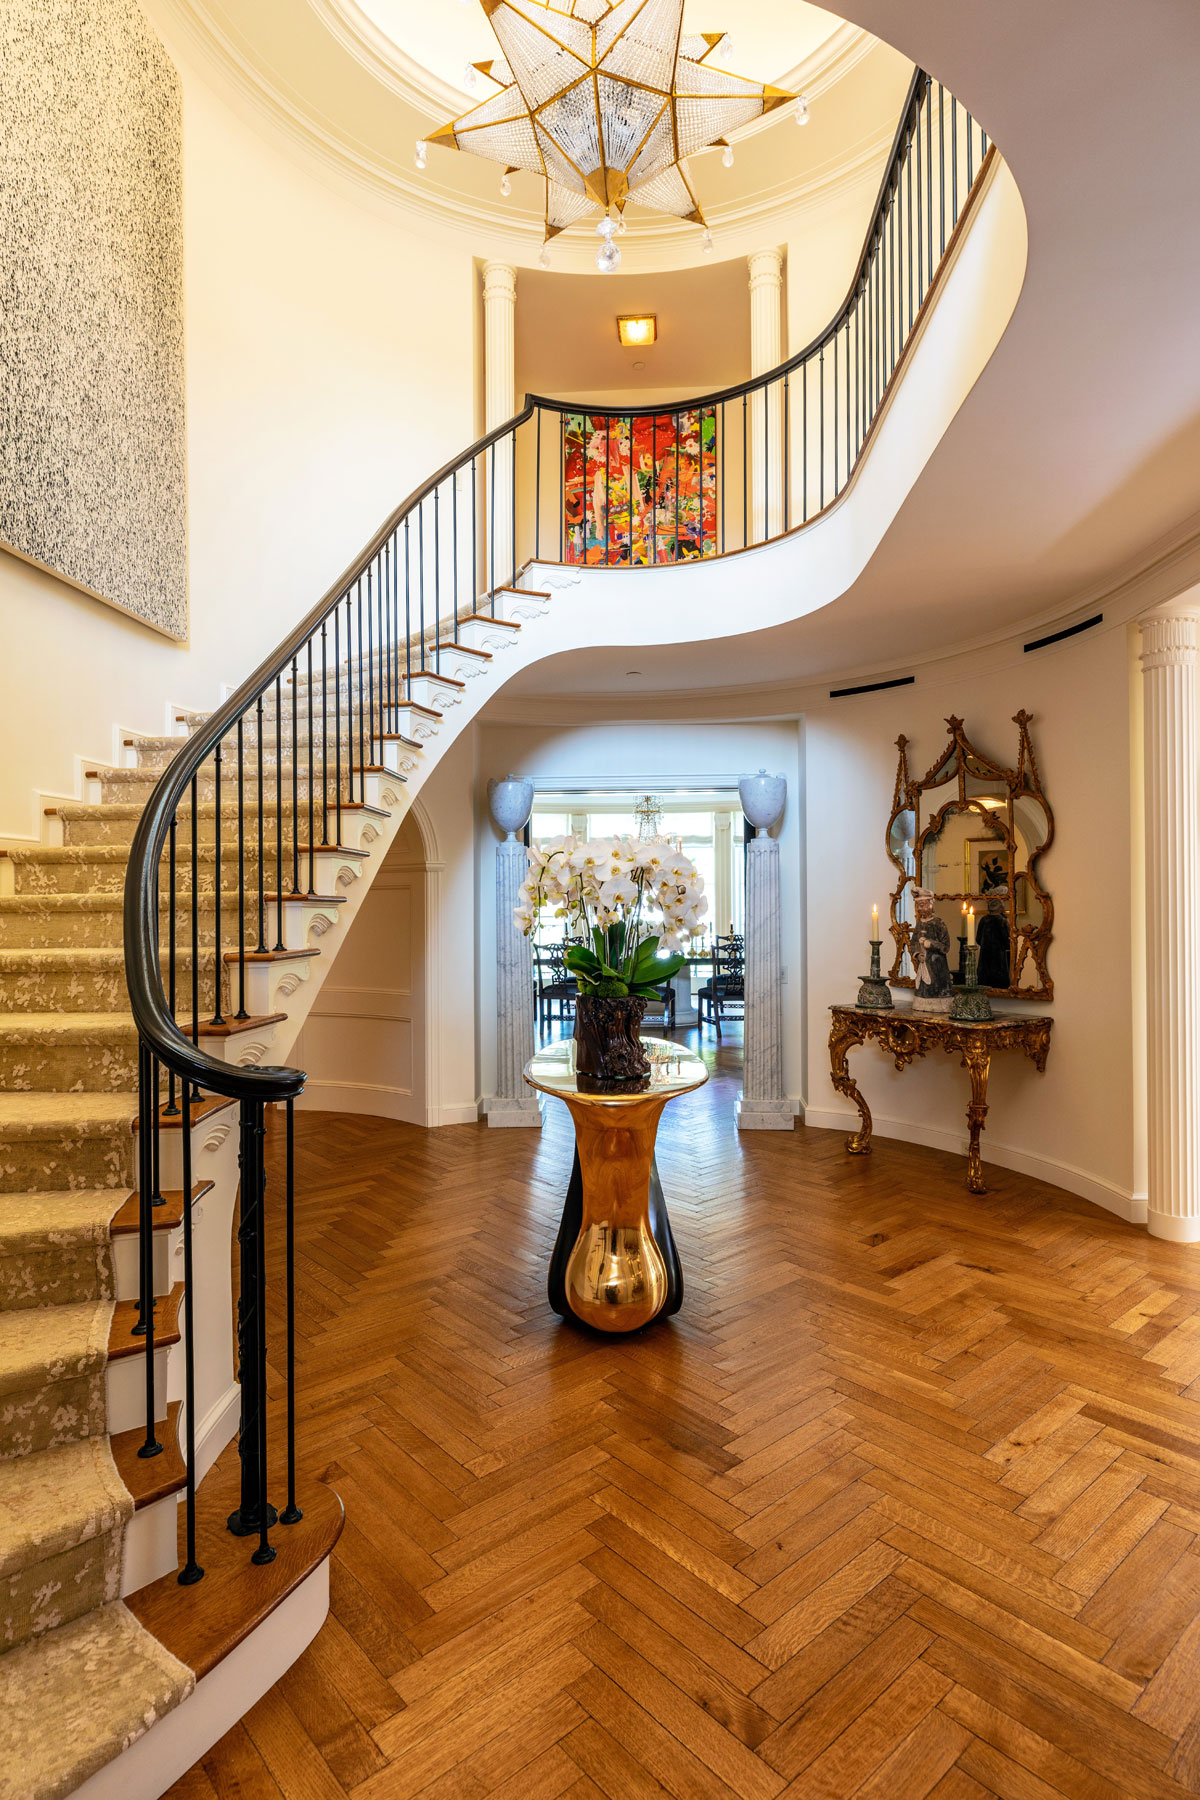 A graceful, curved staircase is the centerpiece of the estate's entry foyer.